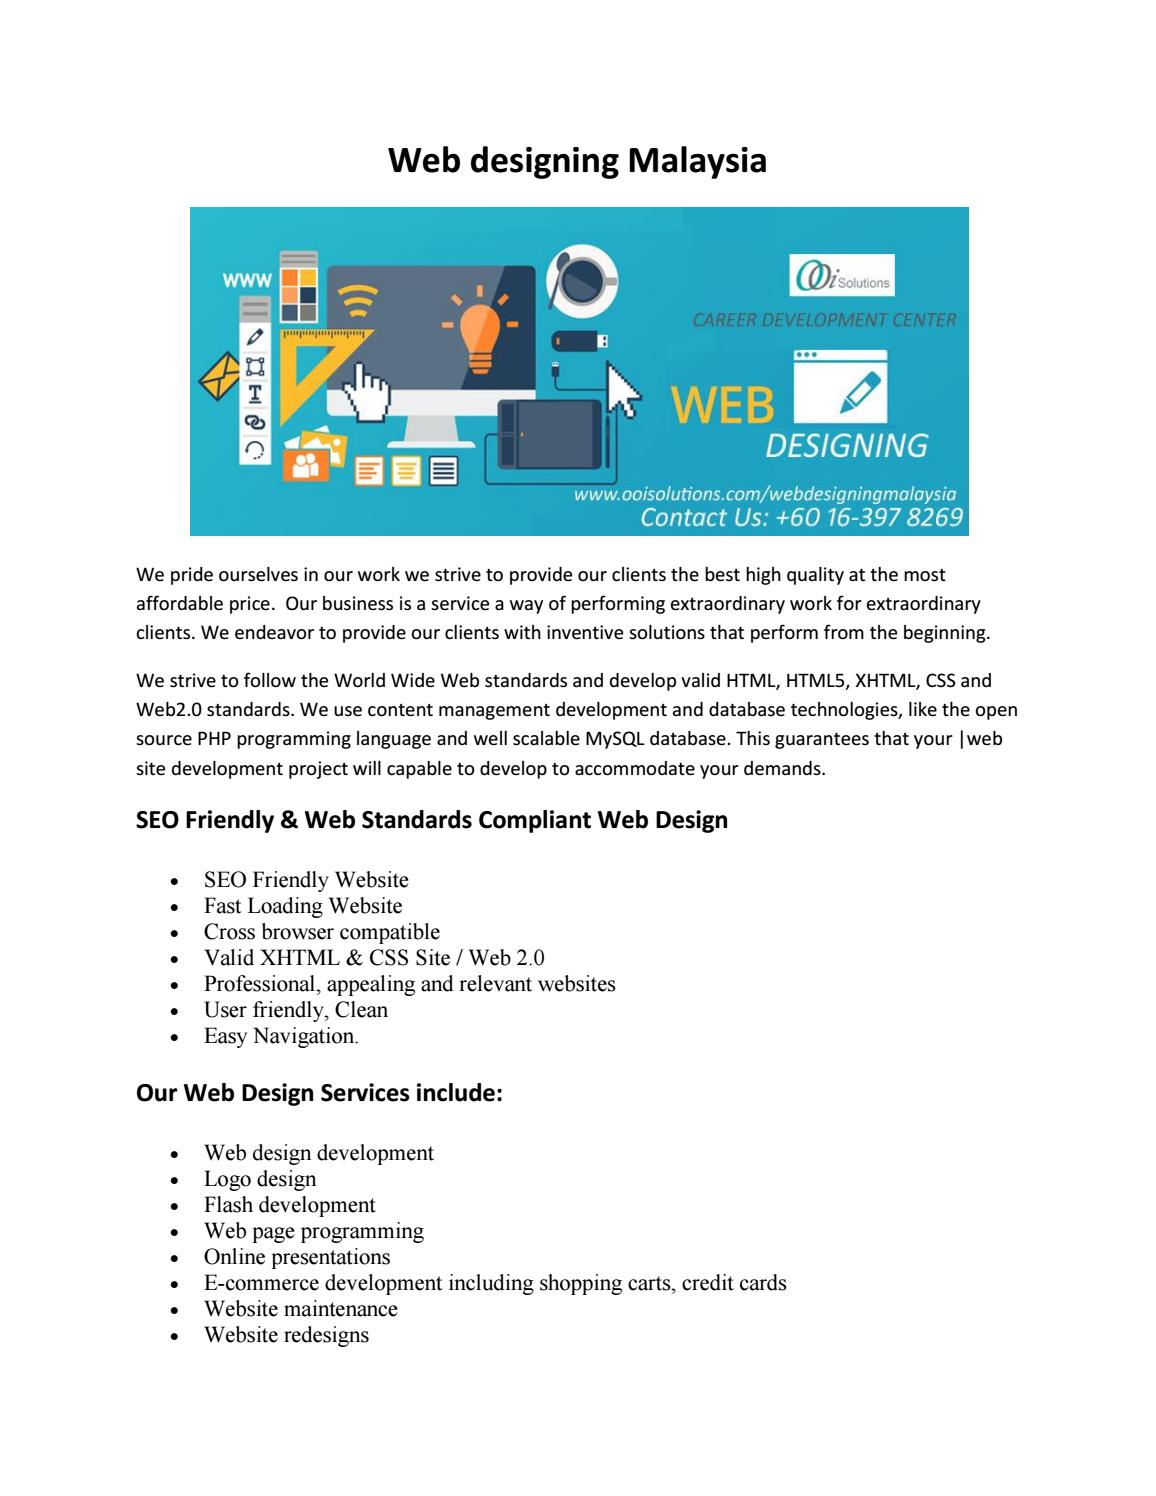 Web Design Company In Malaysia Ecommerce Site Development Pdf By Ooisolutions Issuu